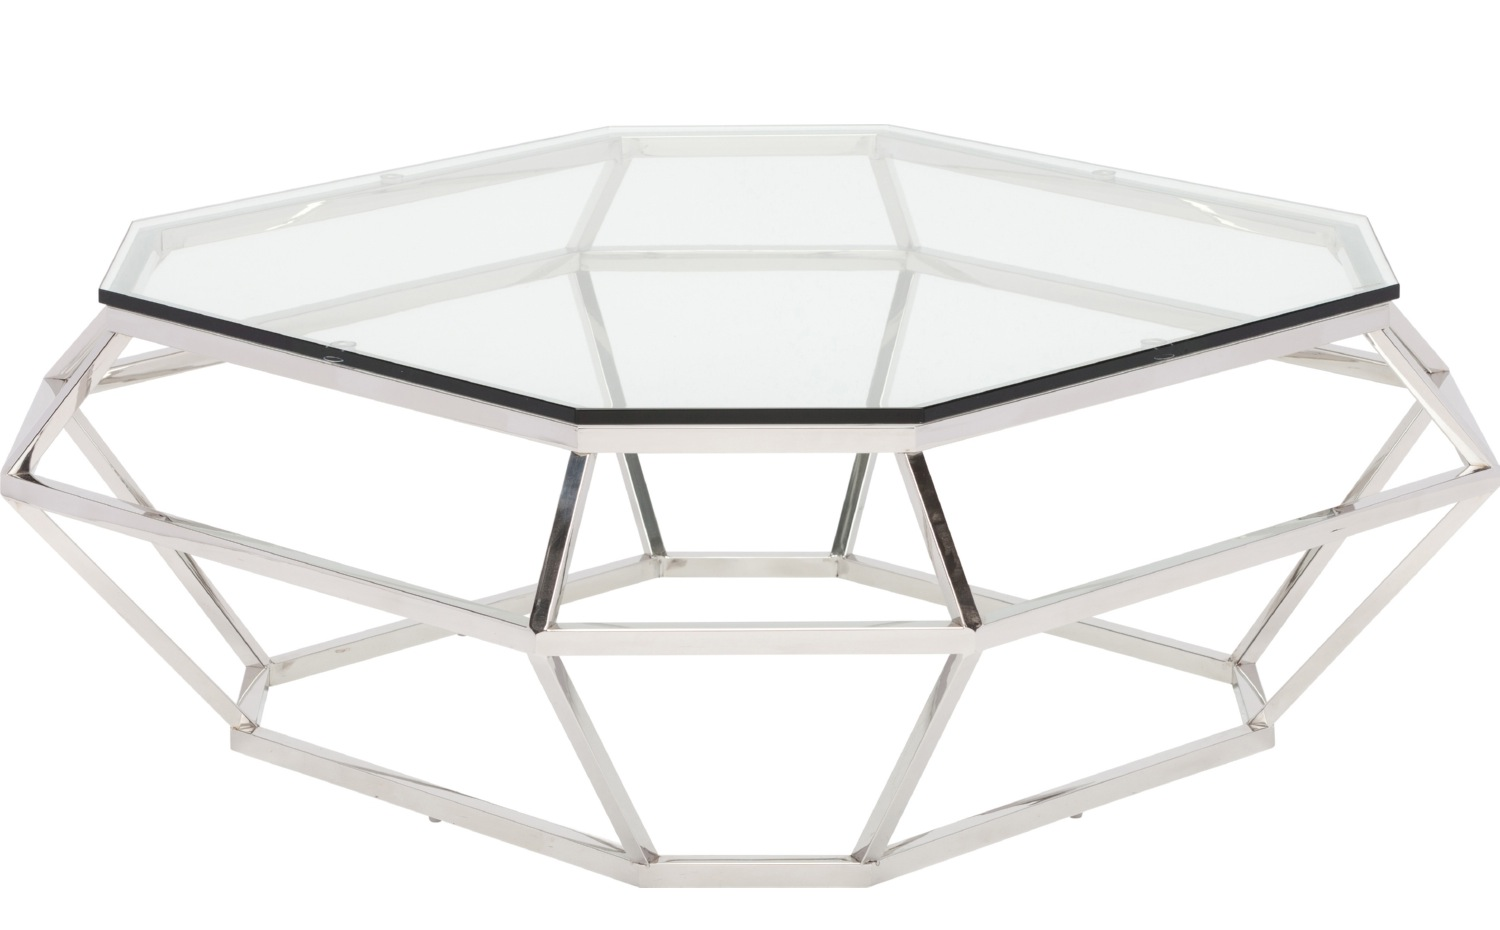 ... Diamond Square Coffee Table Stainless Steel ...